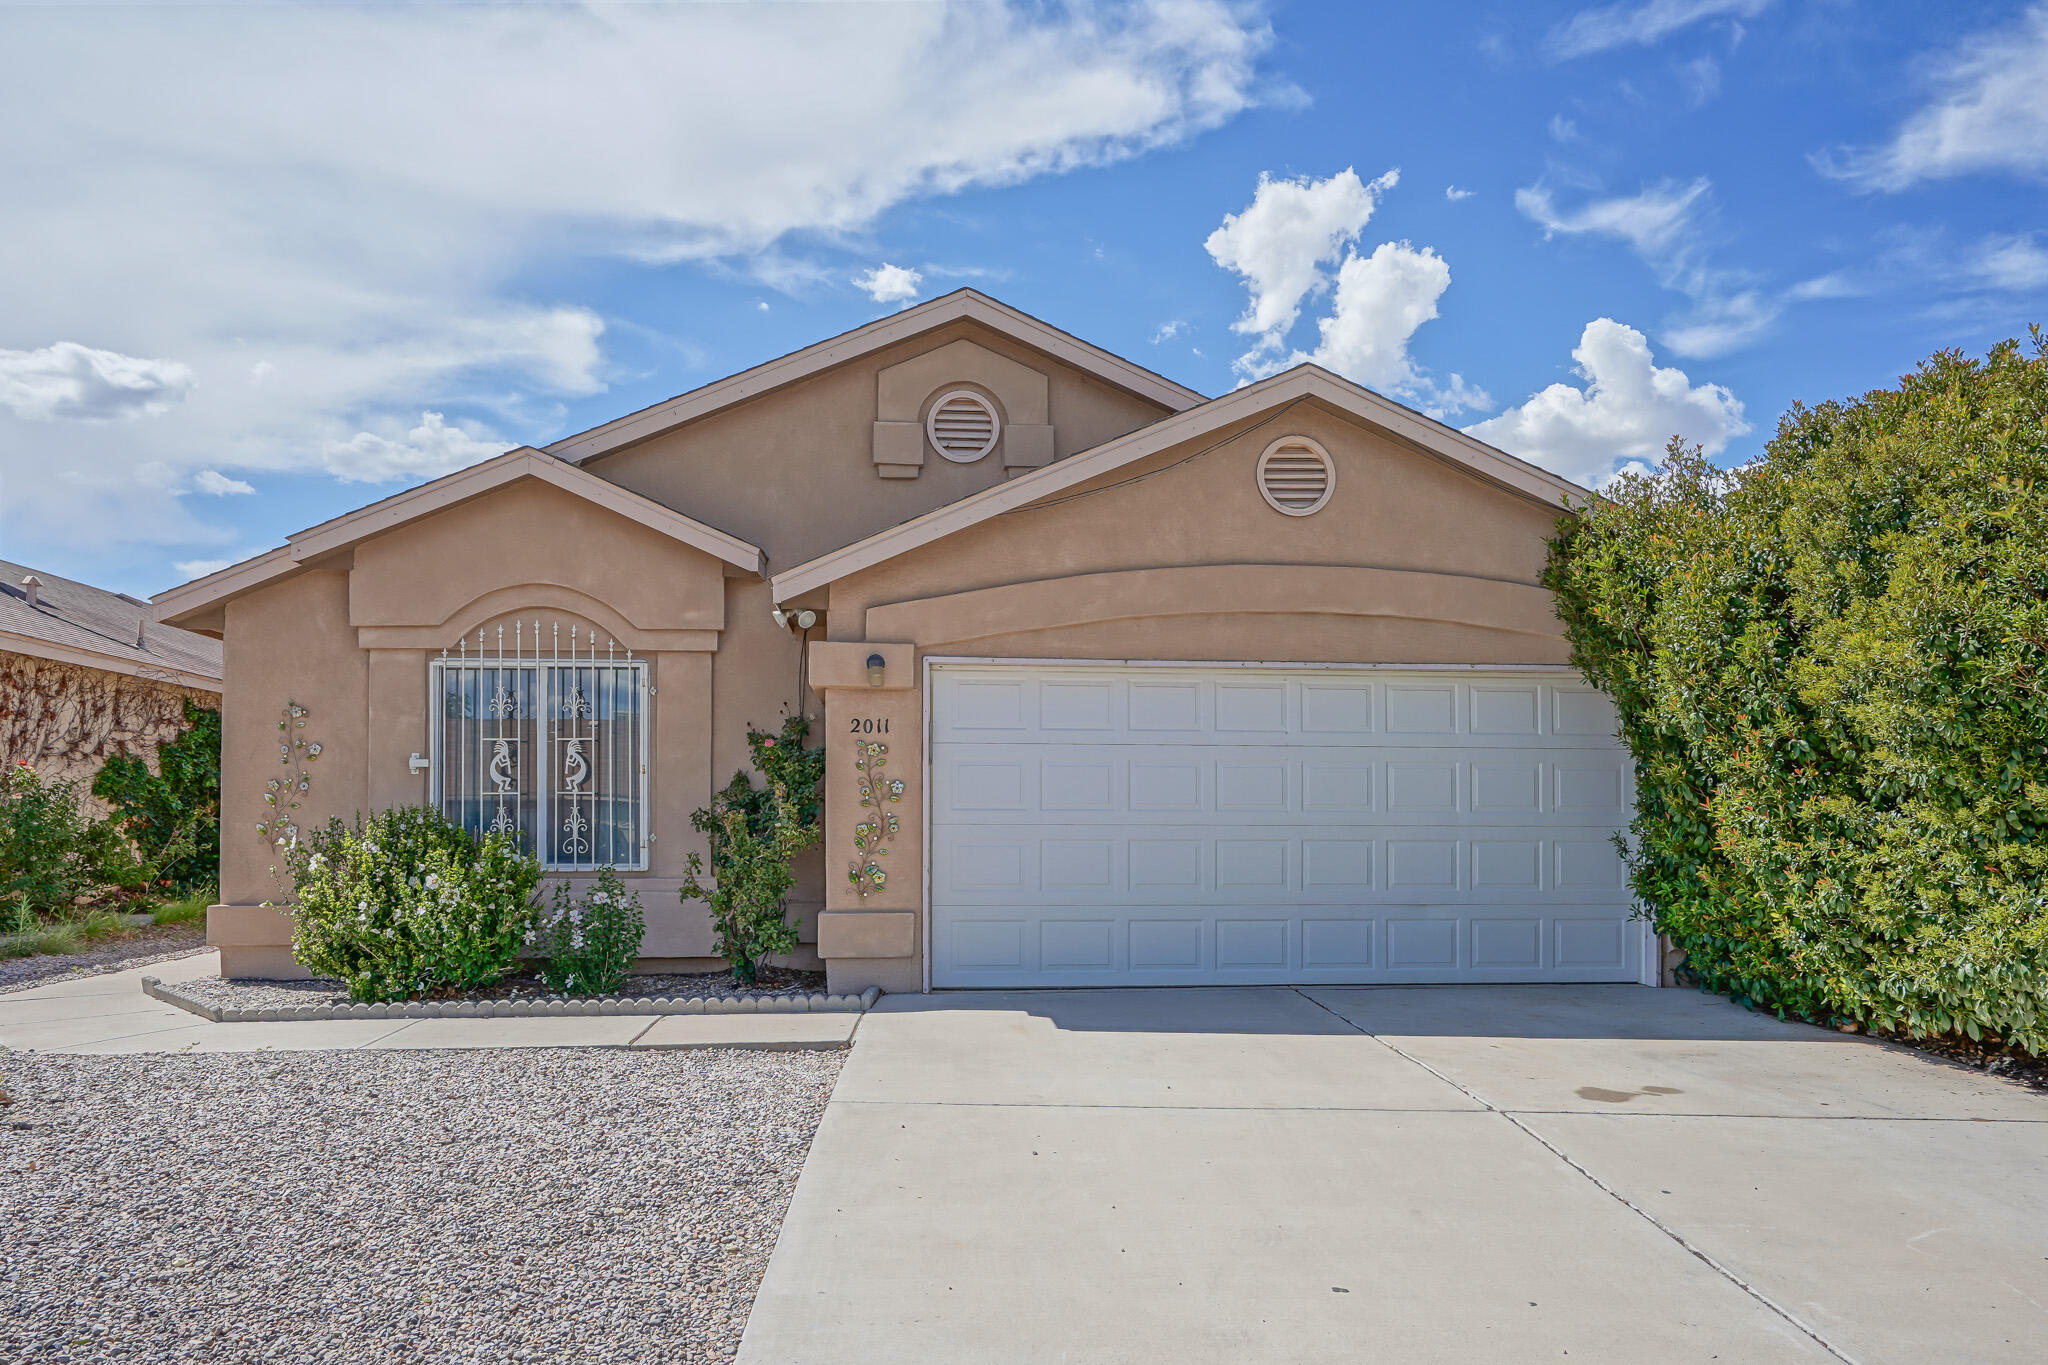 Welcome to this immaculately cared for 3 bedroom 2 bathroom fully remodeled home in the SW area.  The living area is complete with modern grey tile, trendy colors, fireplace  and vaulted ceiling.  The Kitchen is open, roomy and has beautiful modern black appliances.  Each bedroom is large with plenty of room for activities and storage.  The back yard is fully landscaped and complete with a full patio area.  Don't miss your chance to own this perfectly cared for updated home!